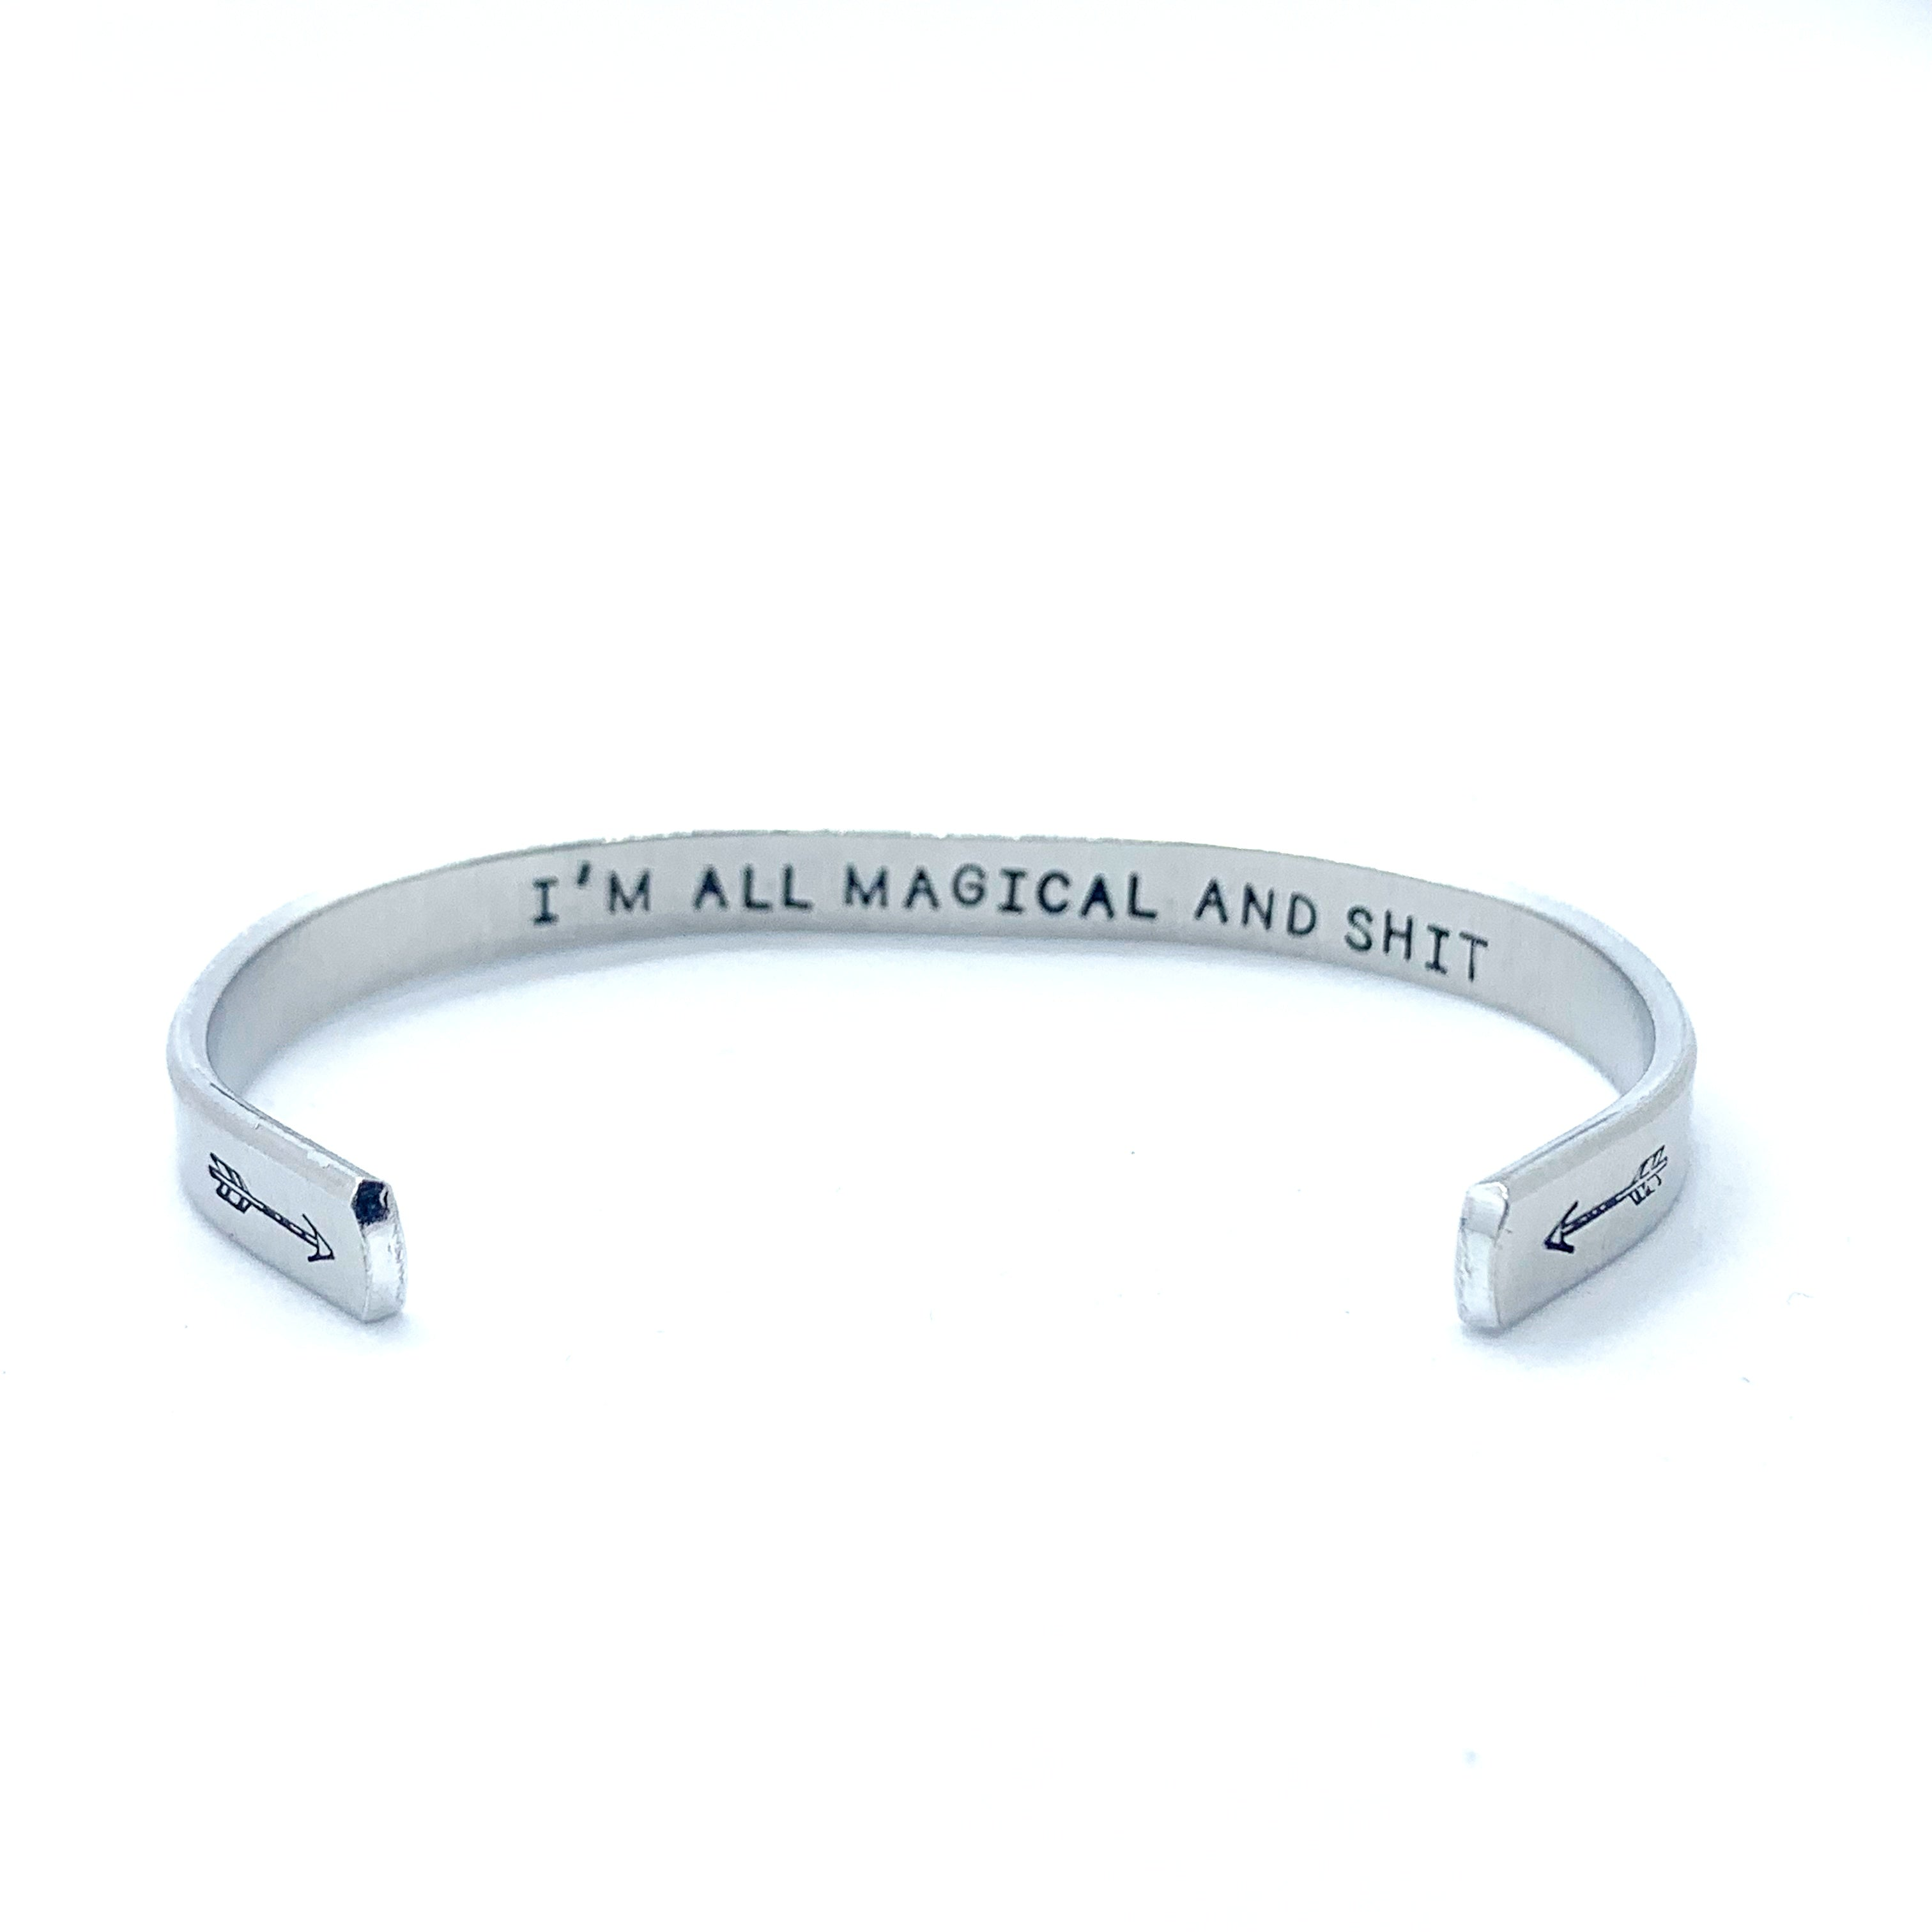 ¼ inch Aluminum Cuff -  (inside) I'm All Magical And Shit